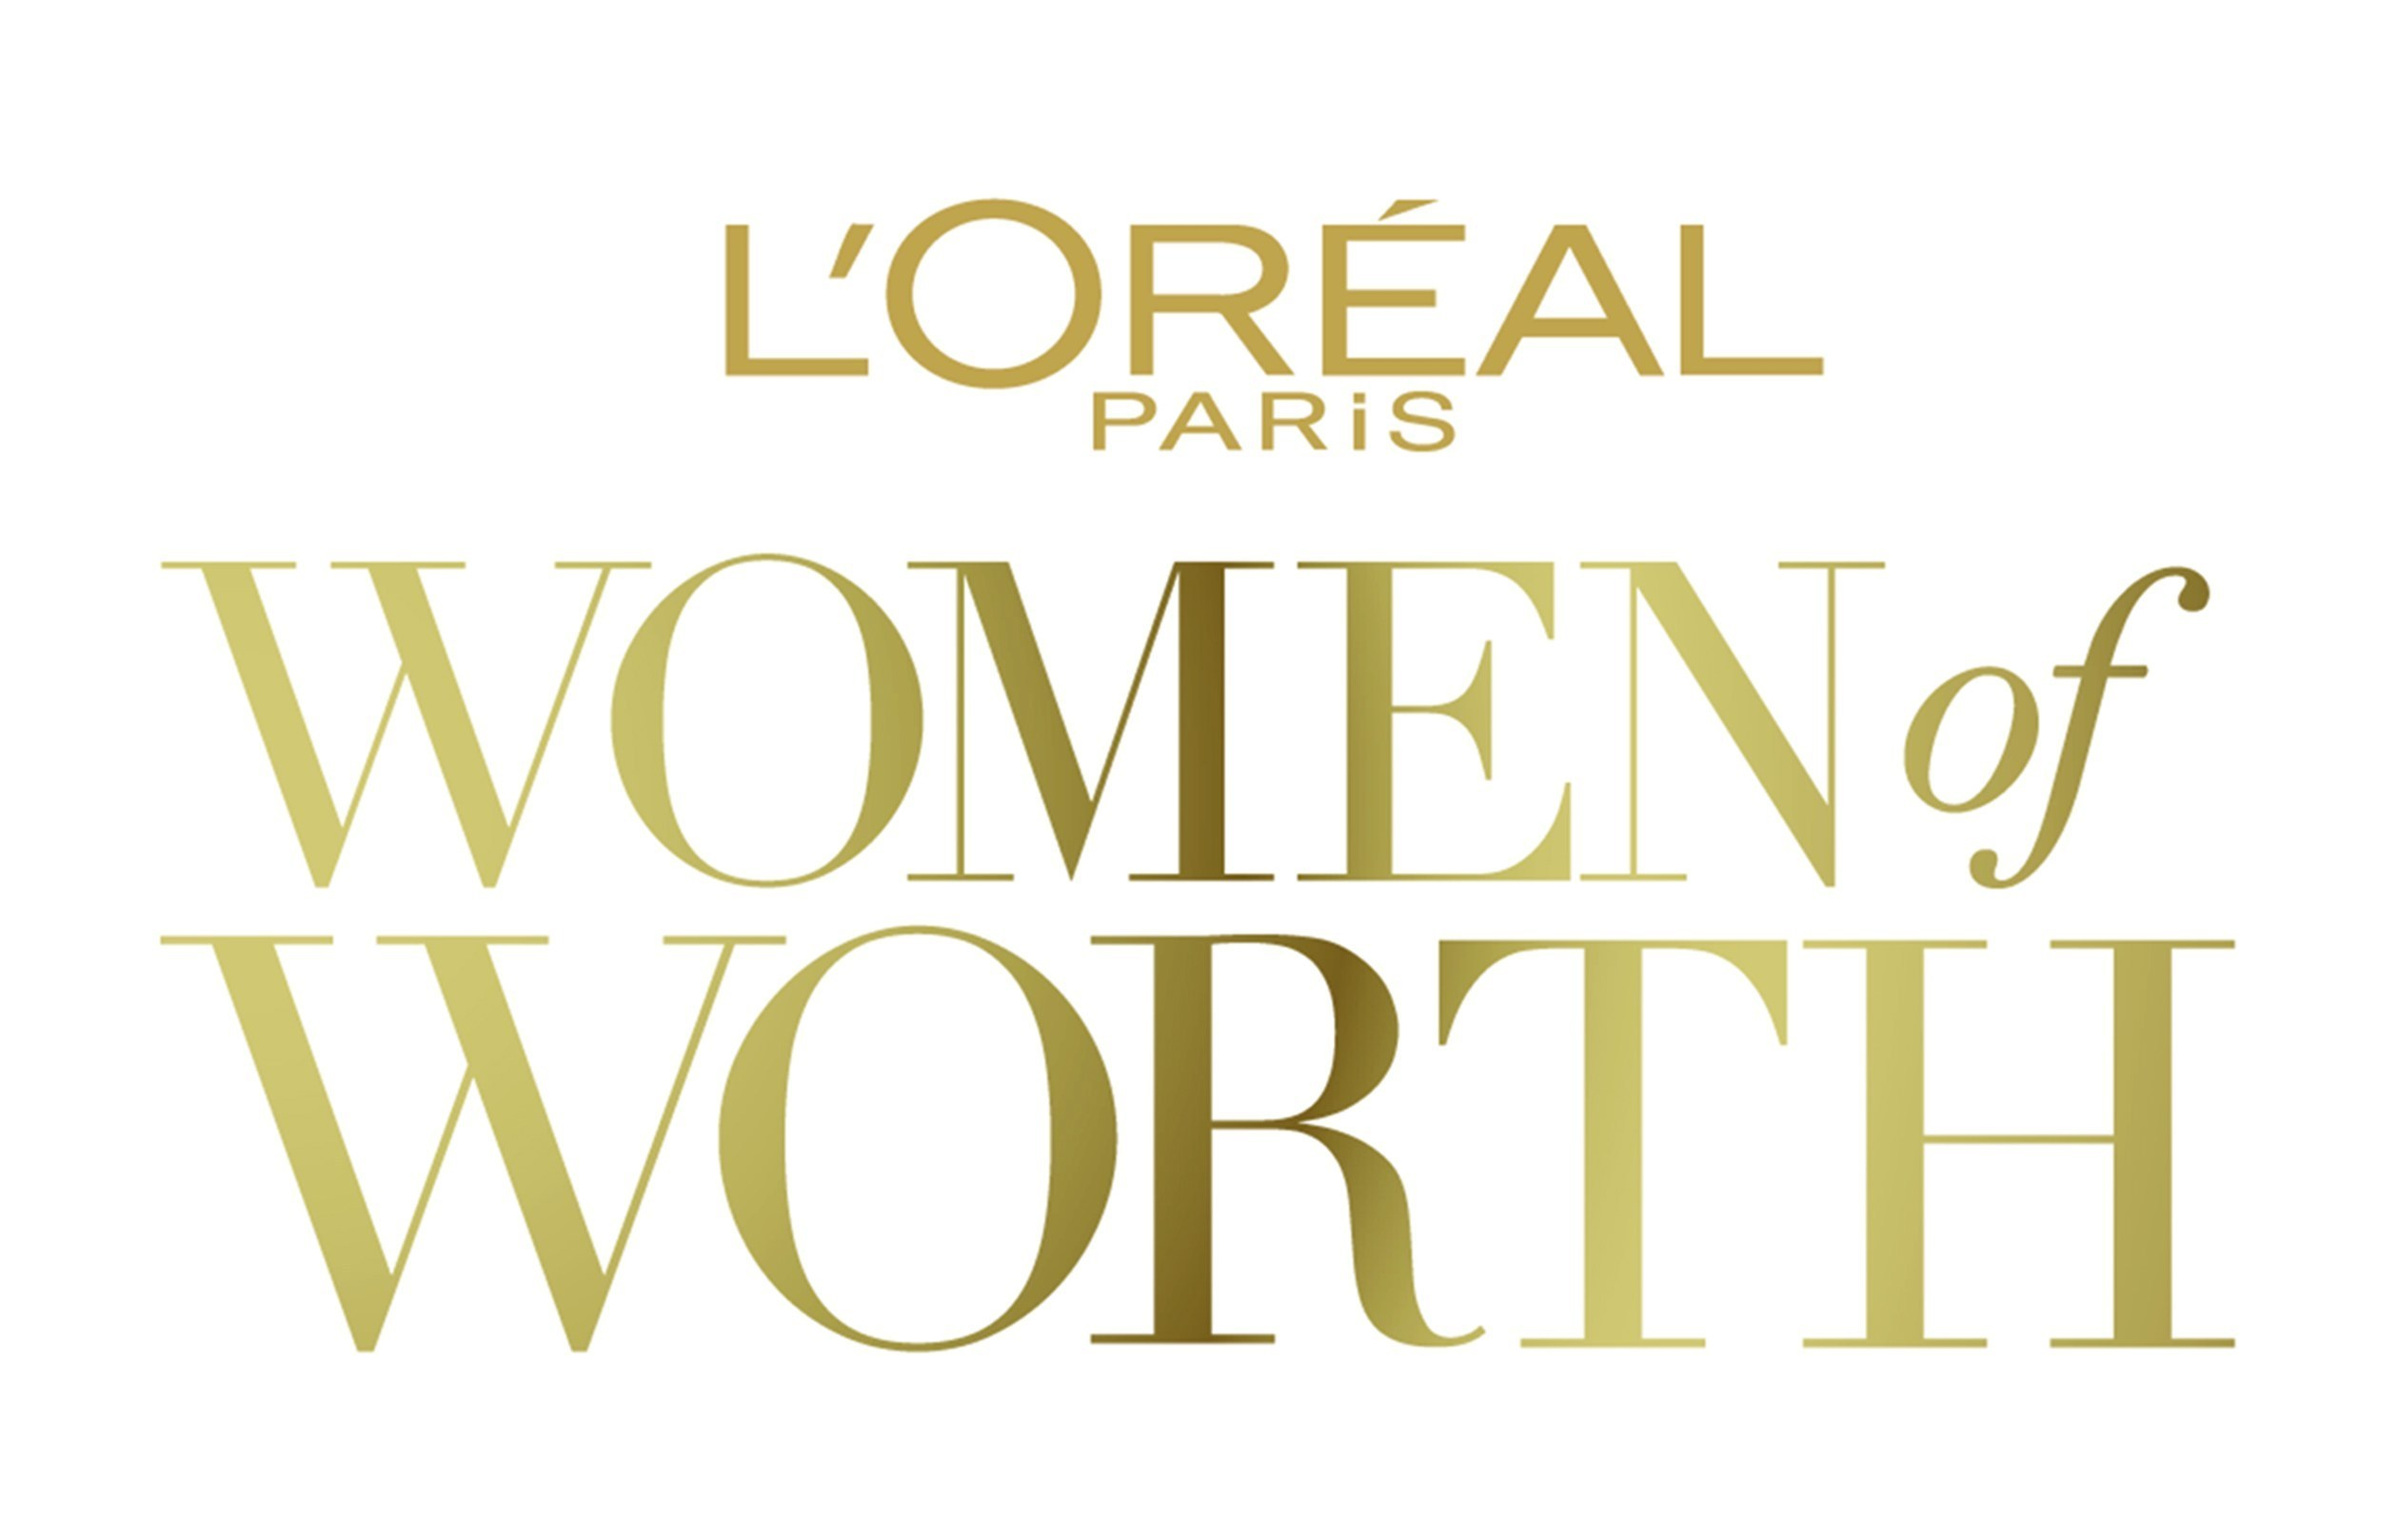 l oreal consumer decision making Considering that this process  cism to attract more consumers and pull them  towards the product, l'oréal  clients' experience and their decision-making.